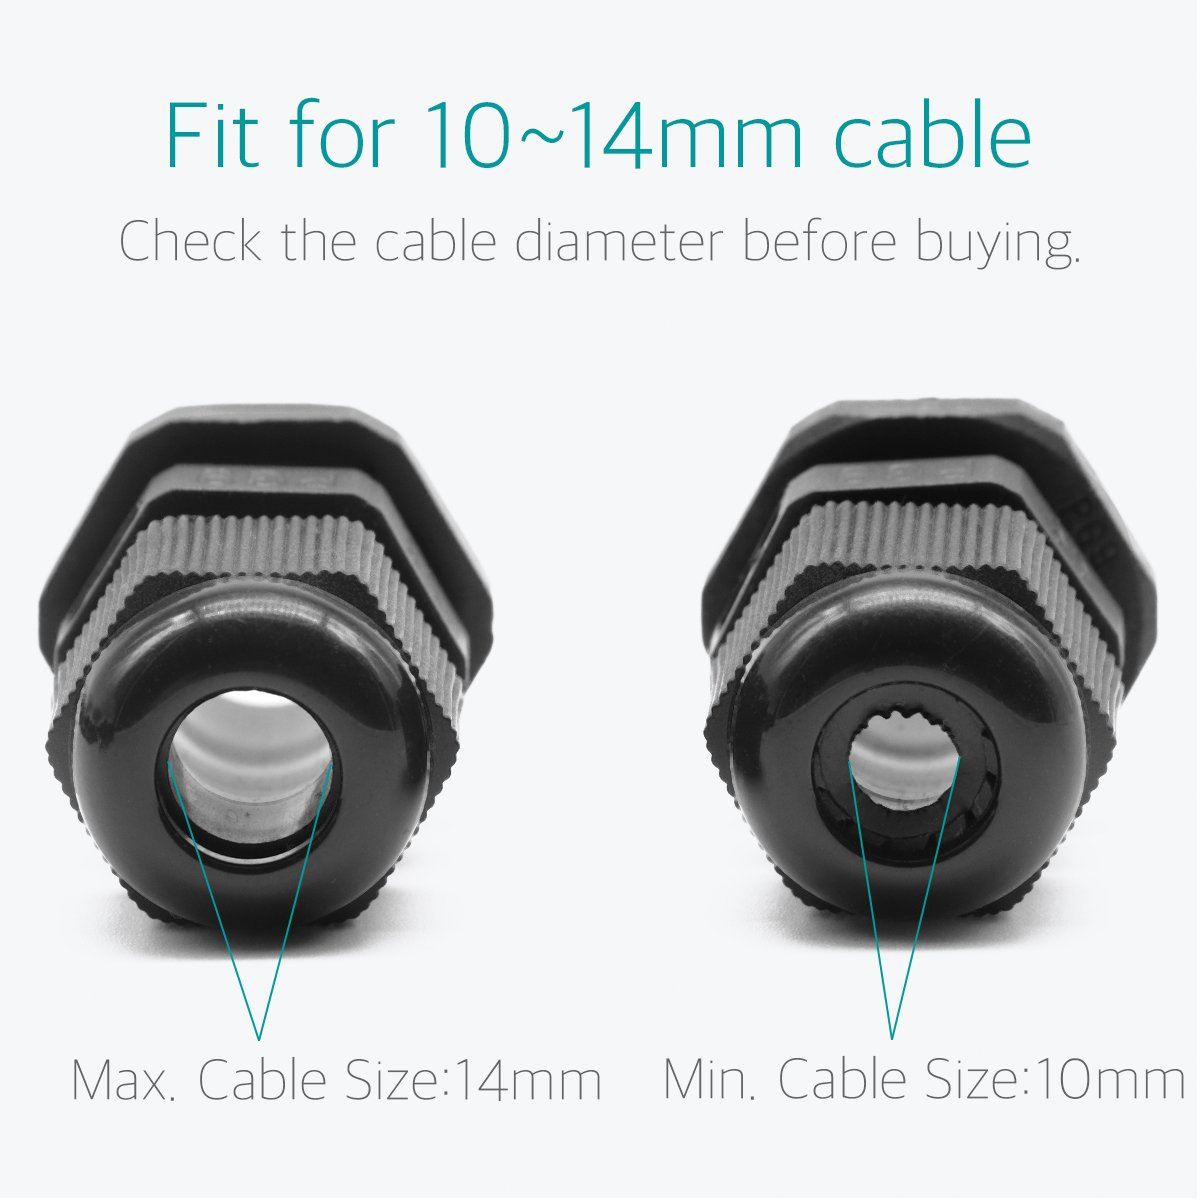 Lantee PG 16 Cable Gland - 20 Pieces Black Plastic Nylon Waterproof Wire Glands Connector Fitting by Lantee (Image #3)